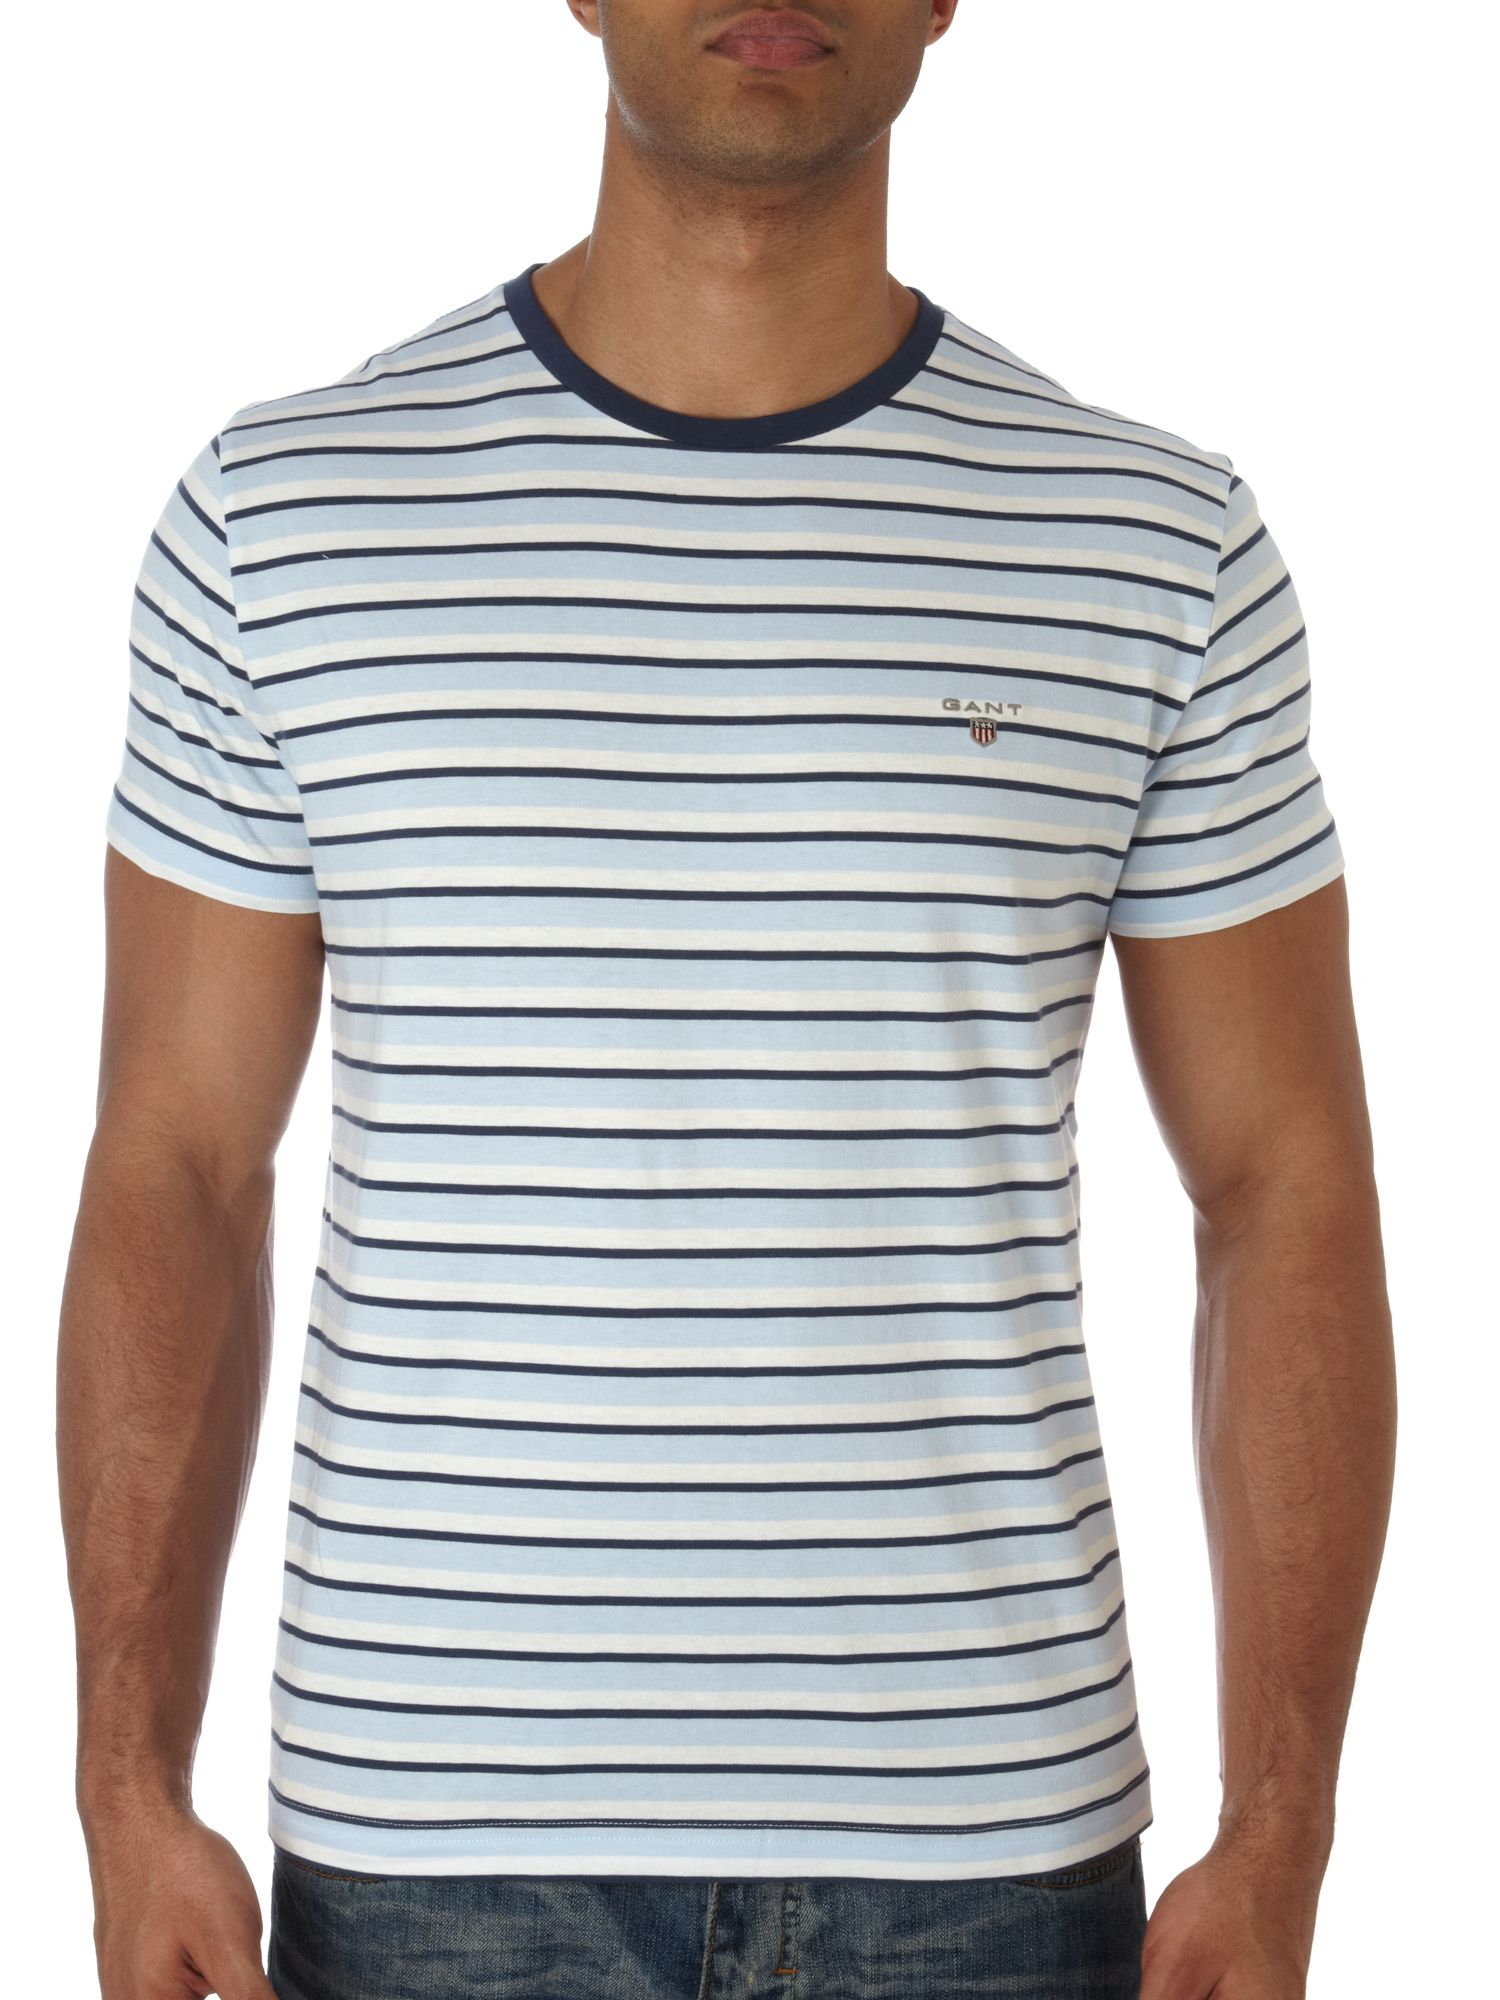 Gant Breton striped crew neck T-shirt product image